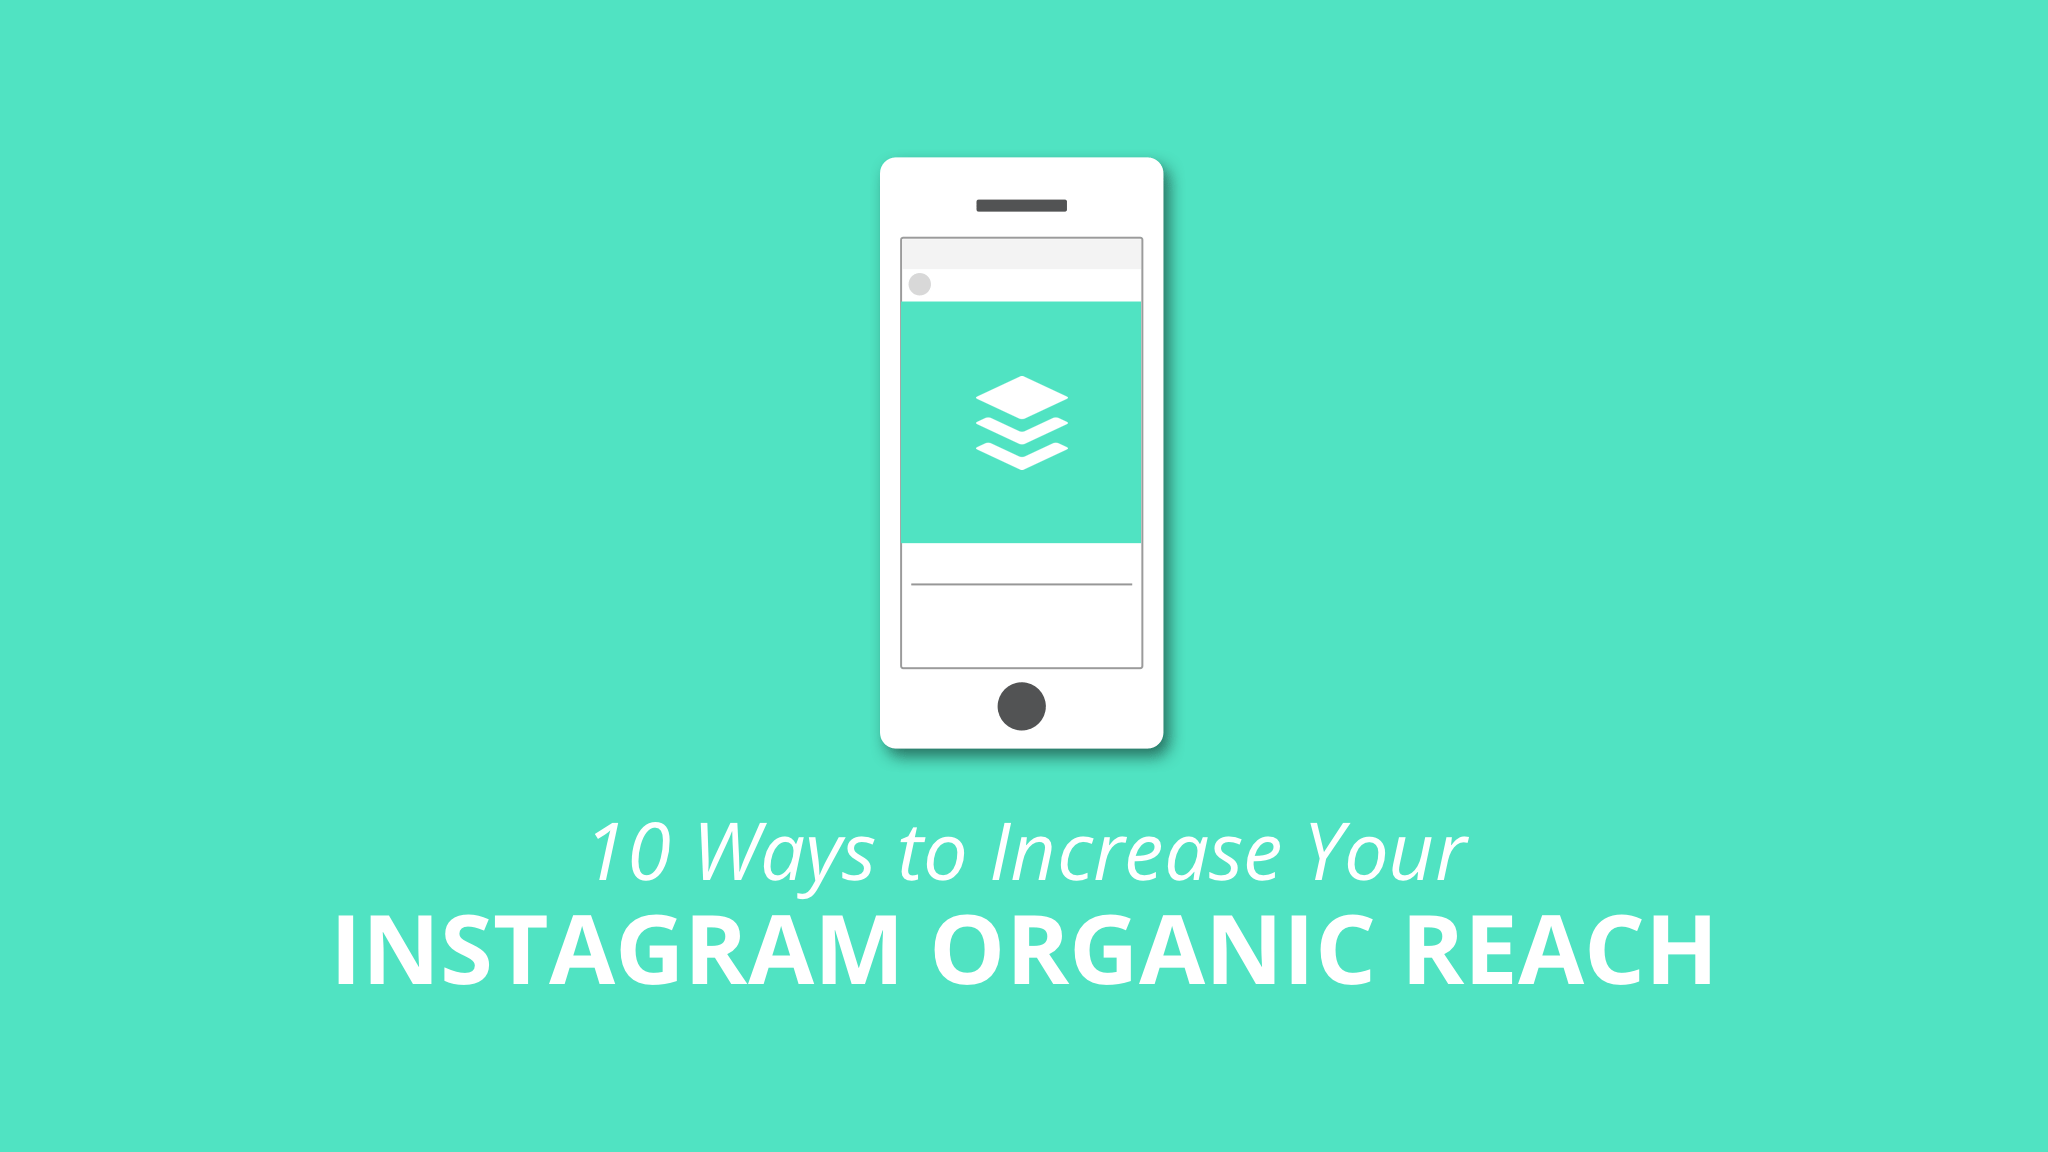 Optimal Timing, Videos, and More: 10 Easy Ways to Boost Your Instagram Reach